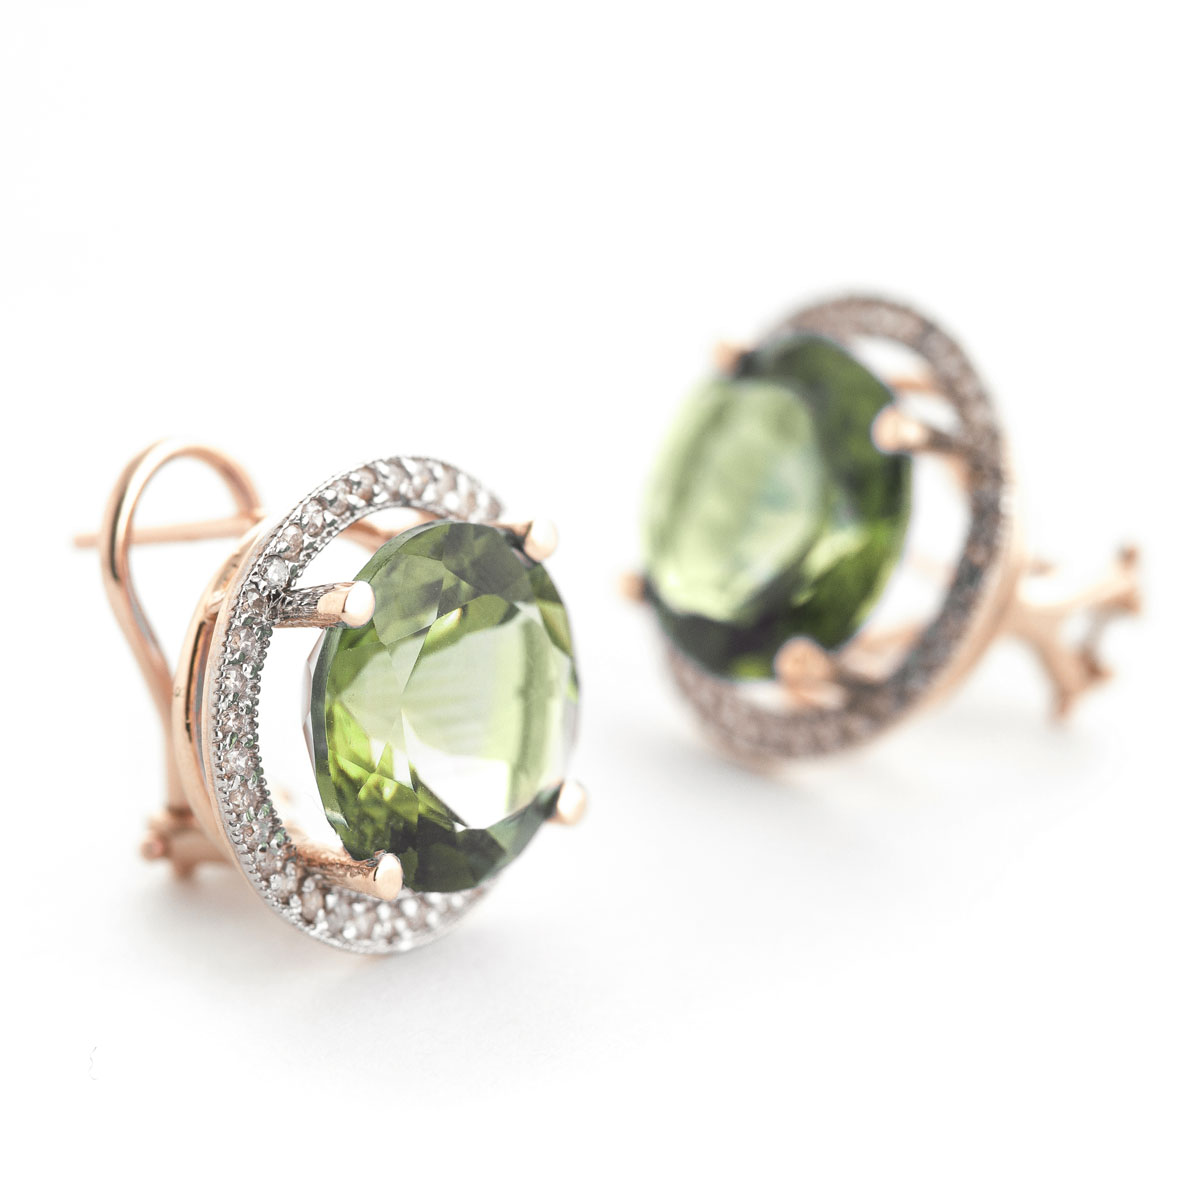 product kiki earrings drop pear jewellery green amethyst mcdonough